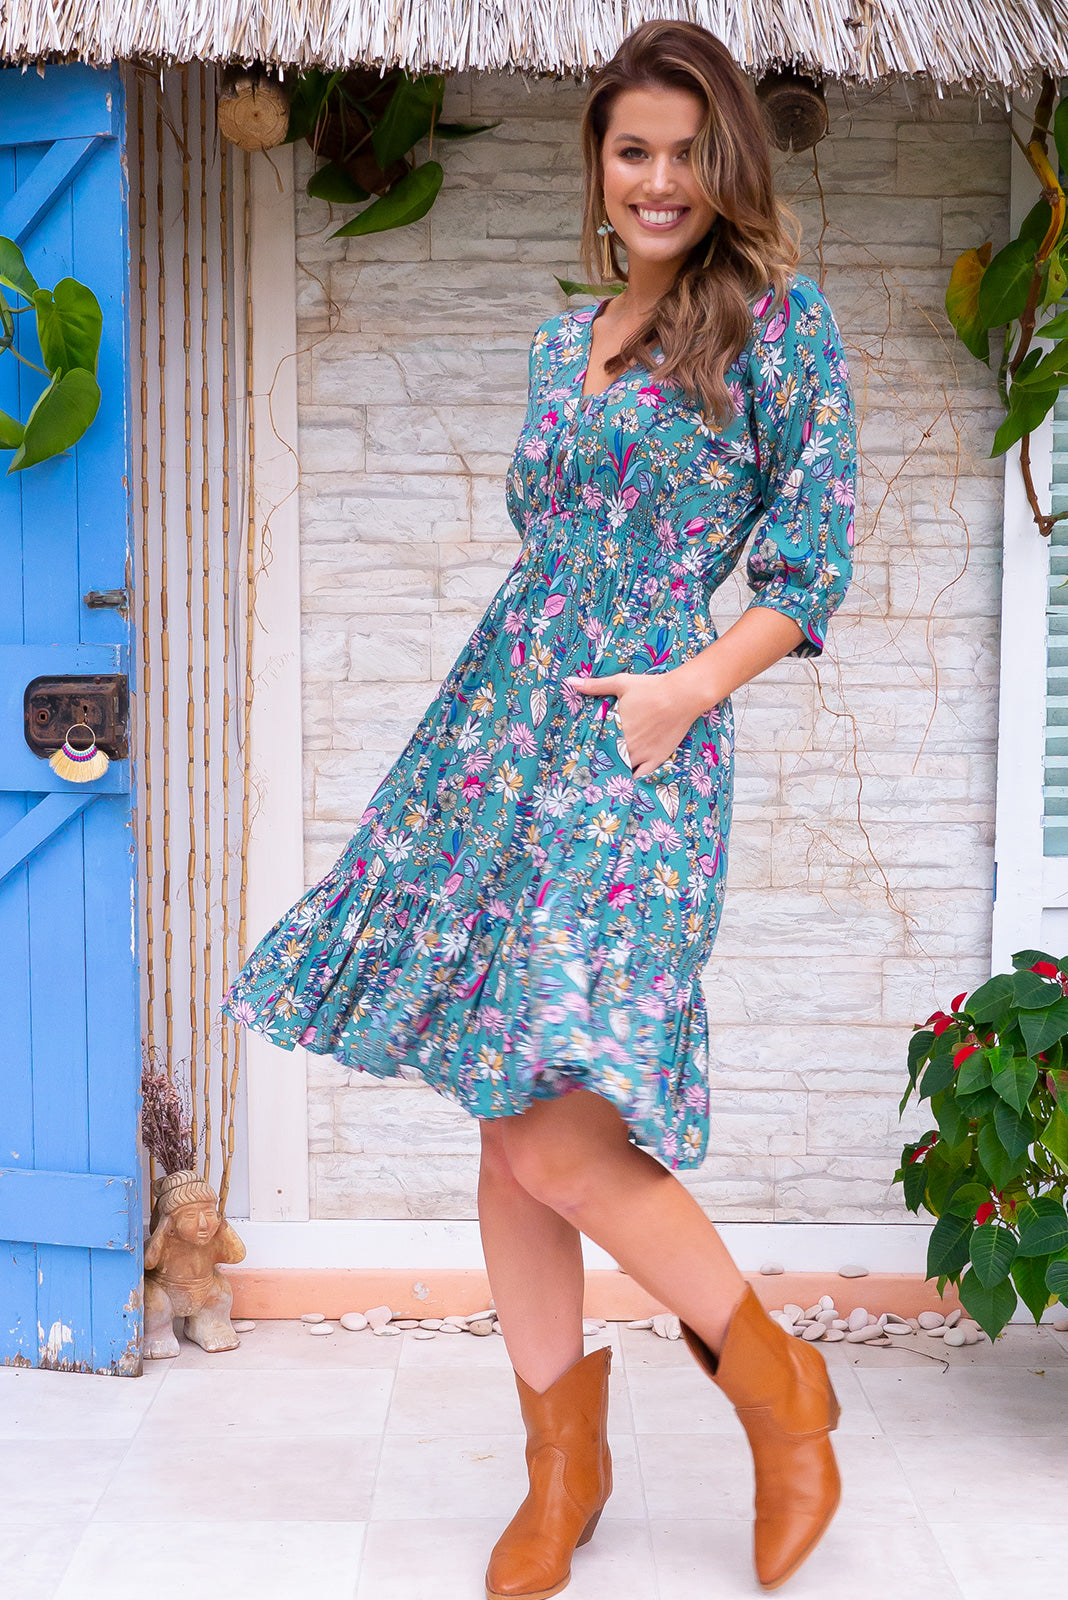 Sally Palma Green dress features elasticated empire line with a cap sleeve, deep v neck and functional button front the fabric is a soft woven rayon in a dark sea foam green floral print